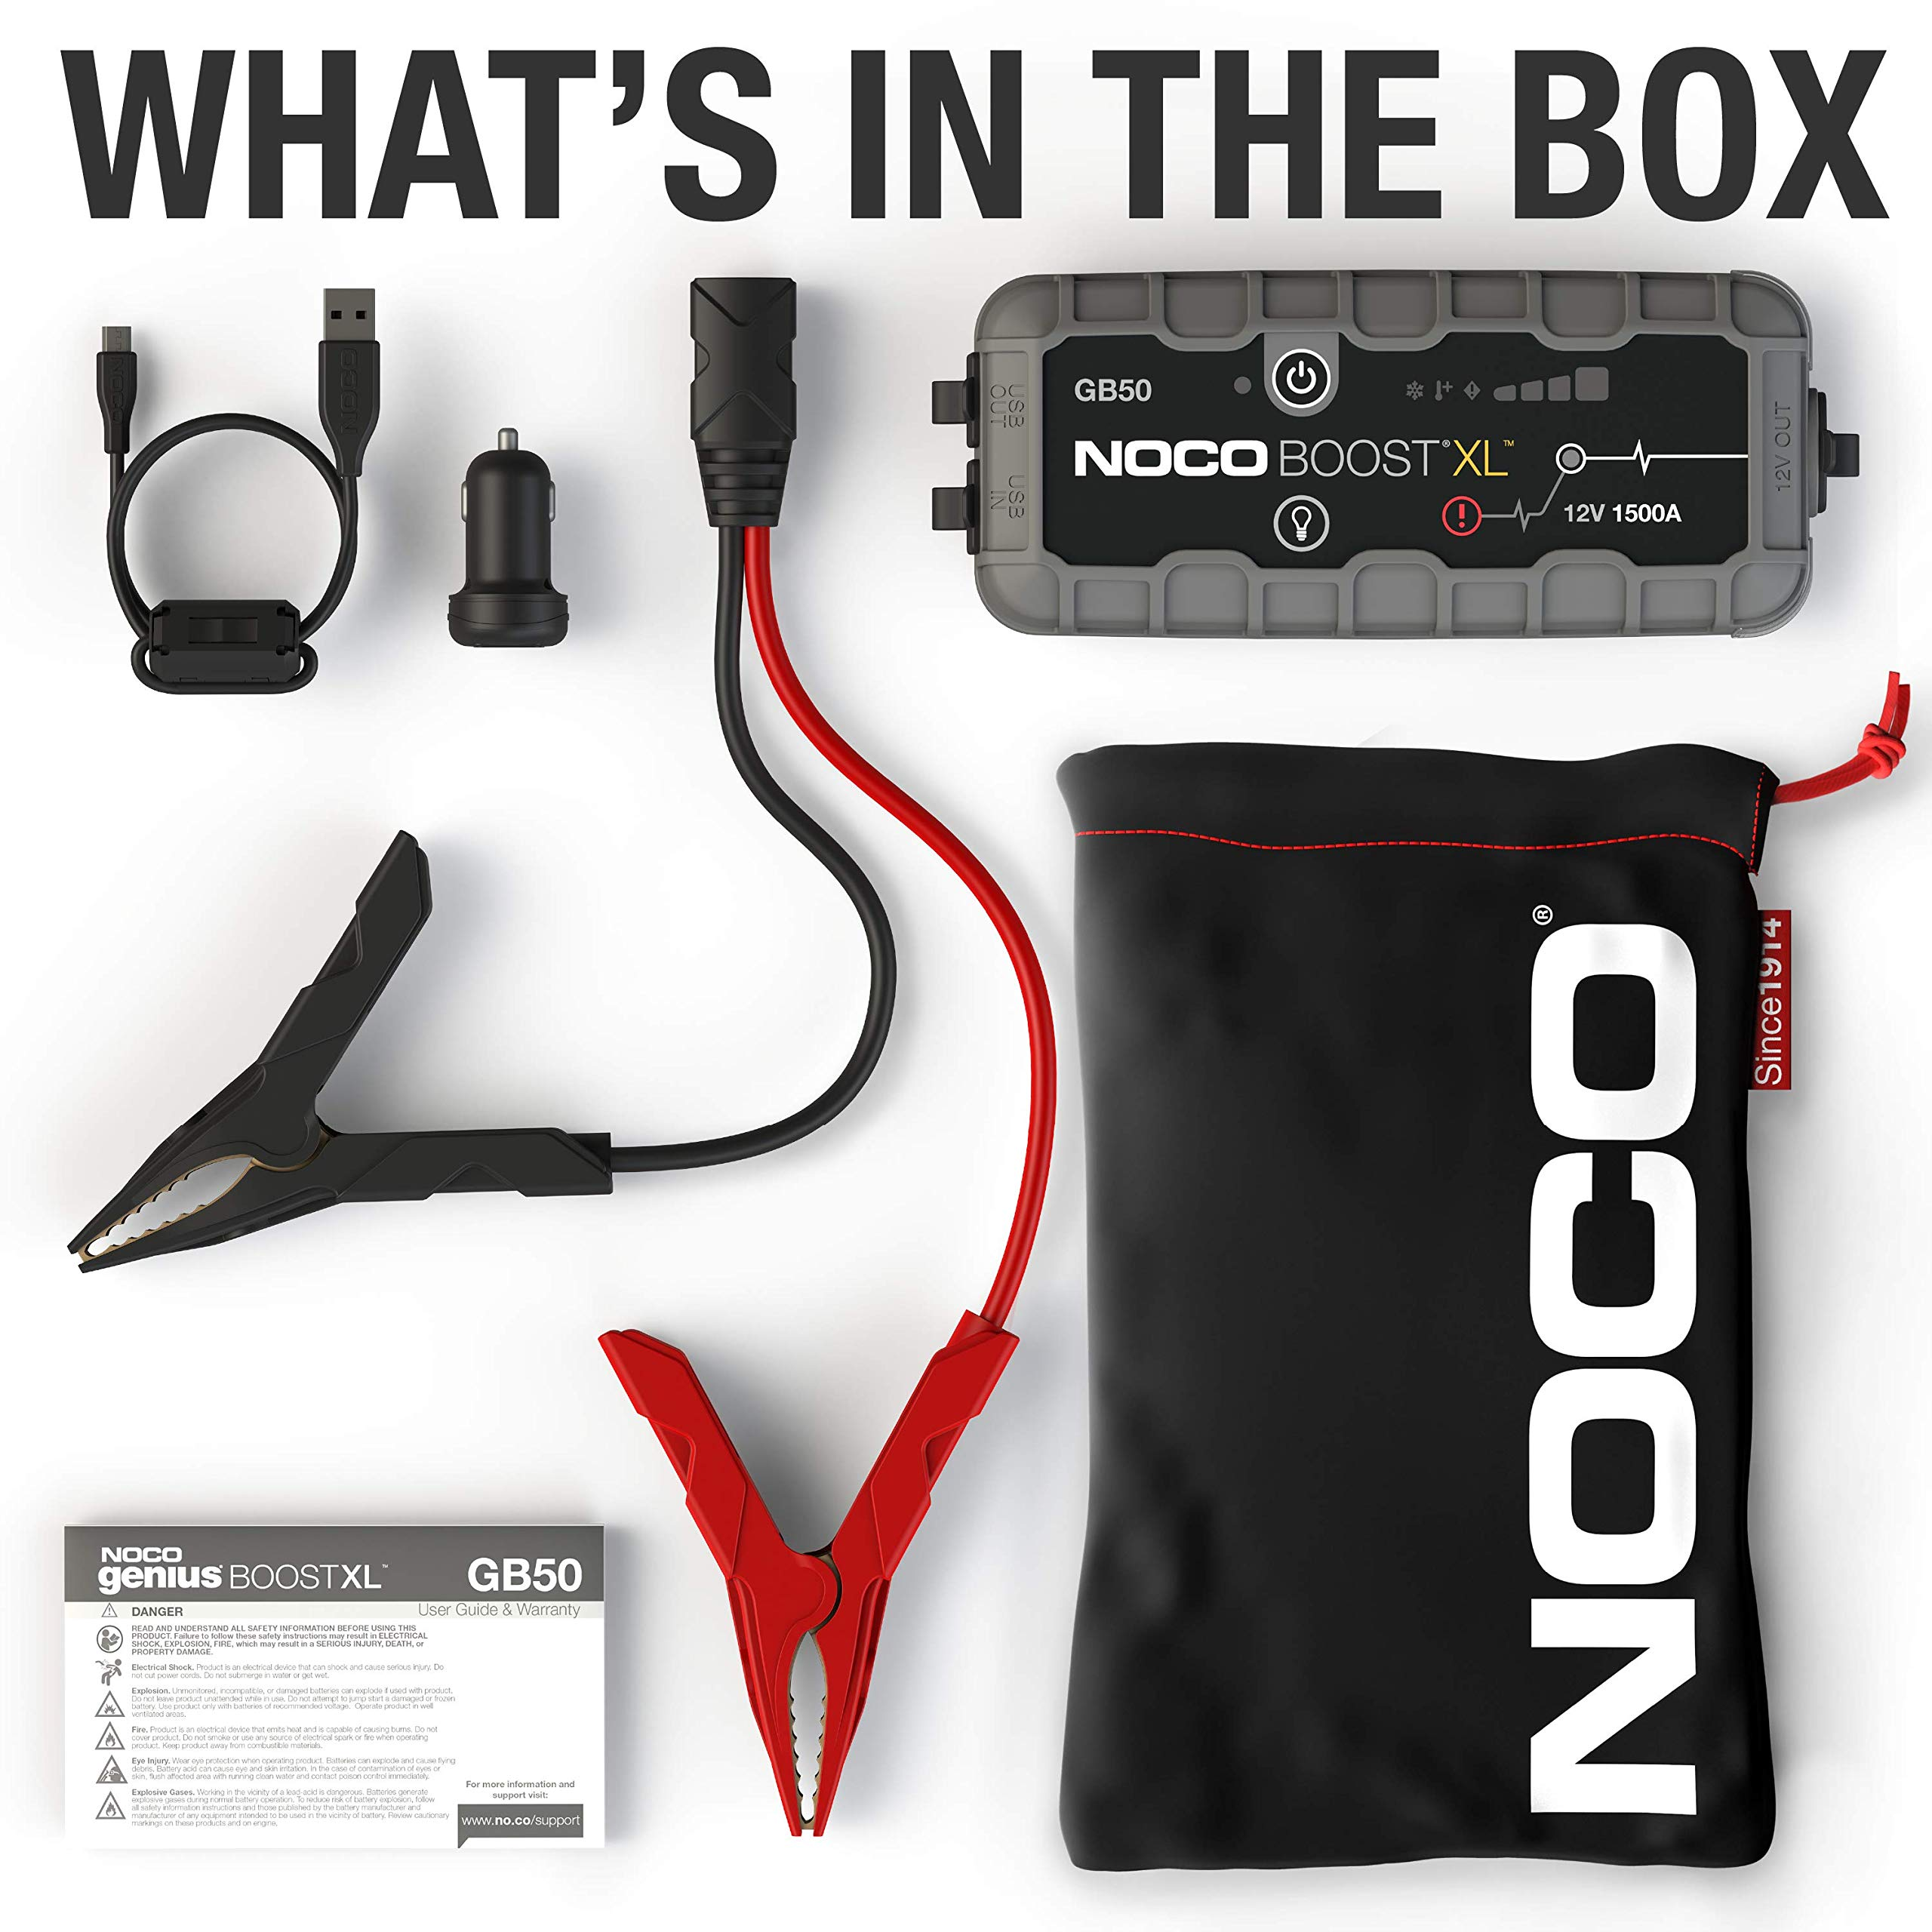 NOCO Boost XL GB50 1500 Amp 12V UltraSafe Lithium Jump Starter by NOCO (Image #5)